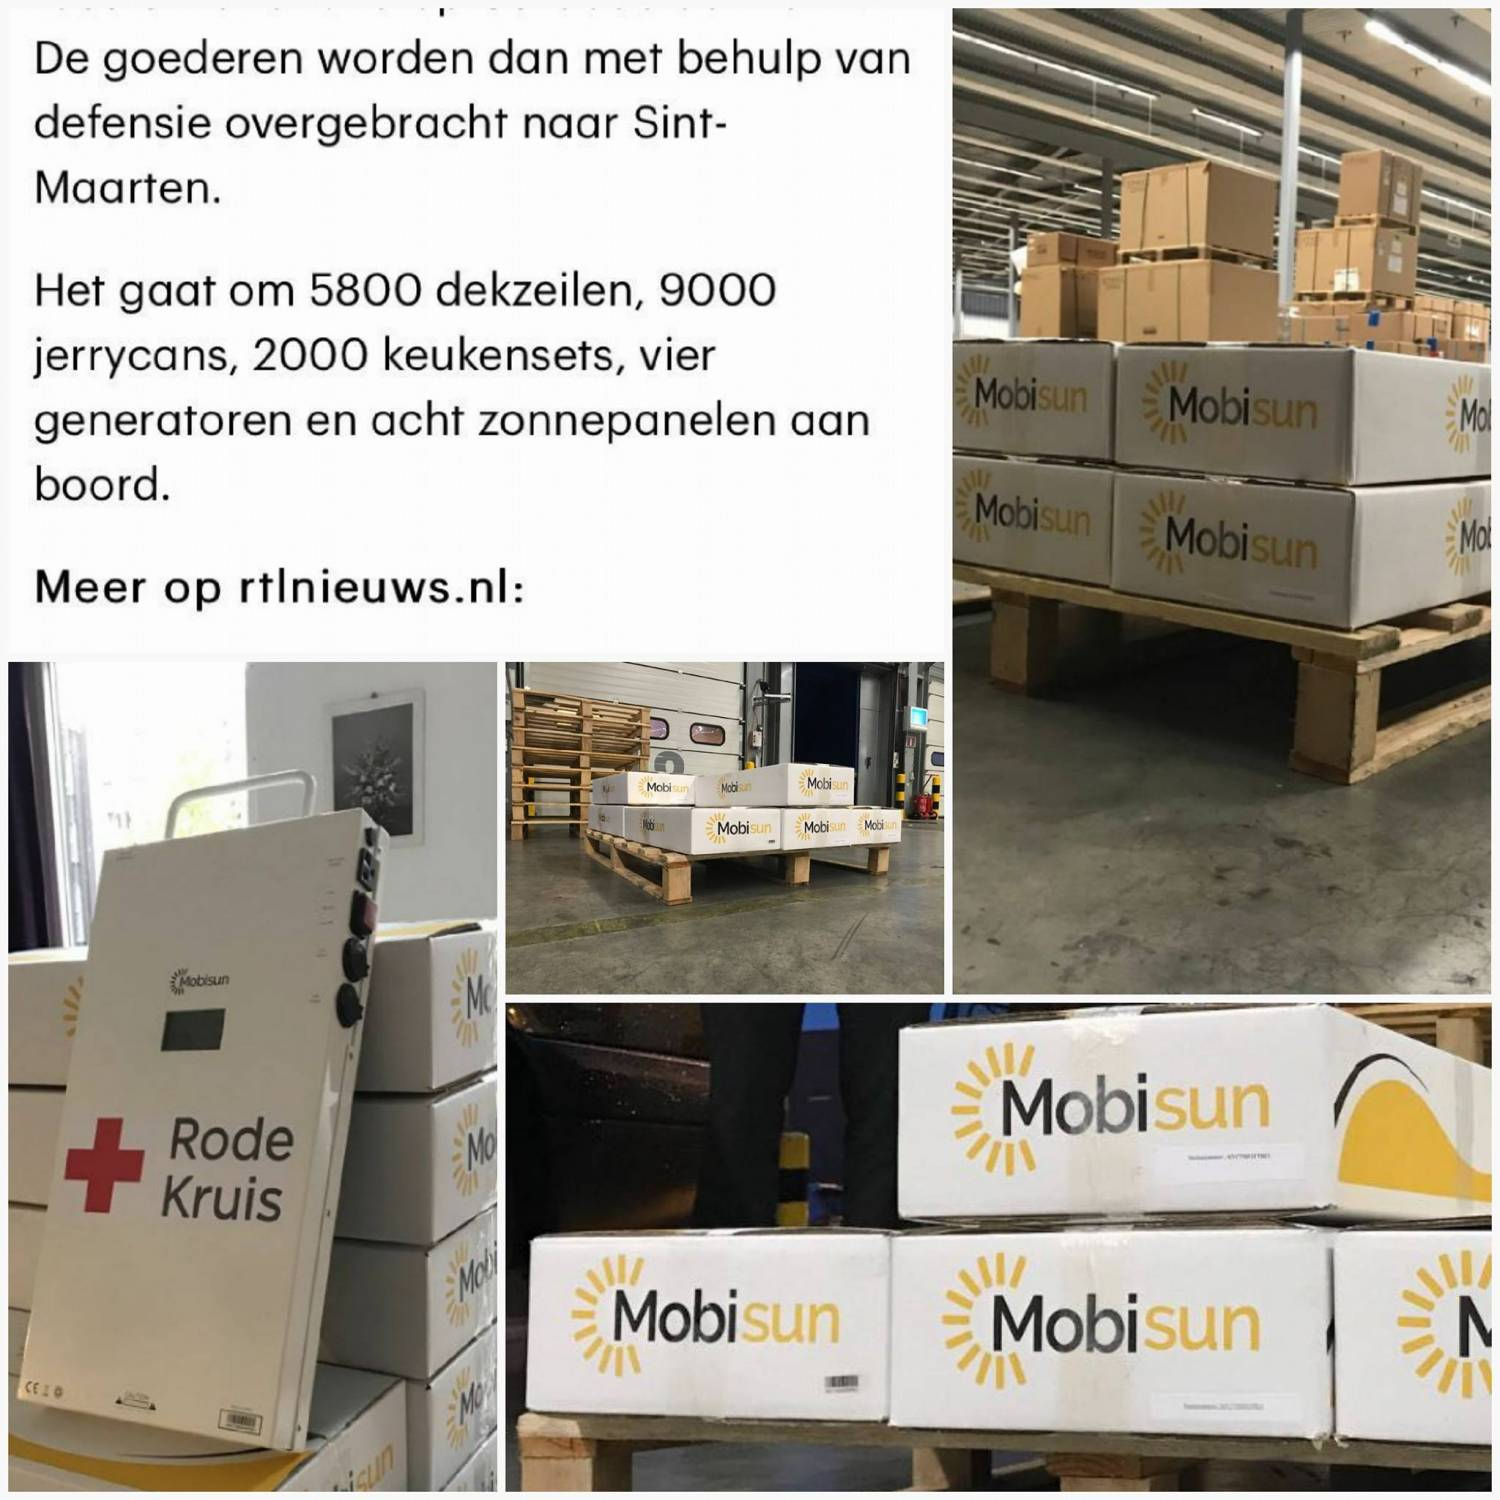 Mobisun supports Red Cross with relief aid Saint Maarten